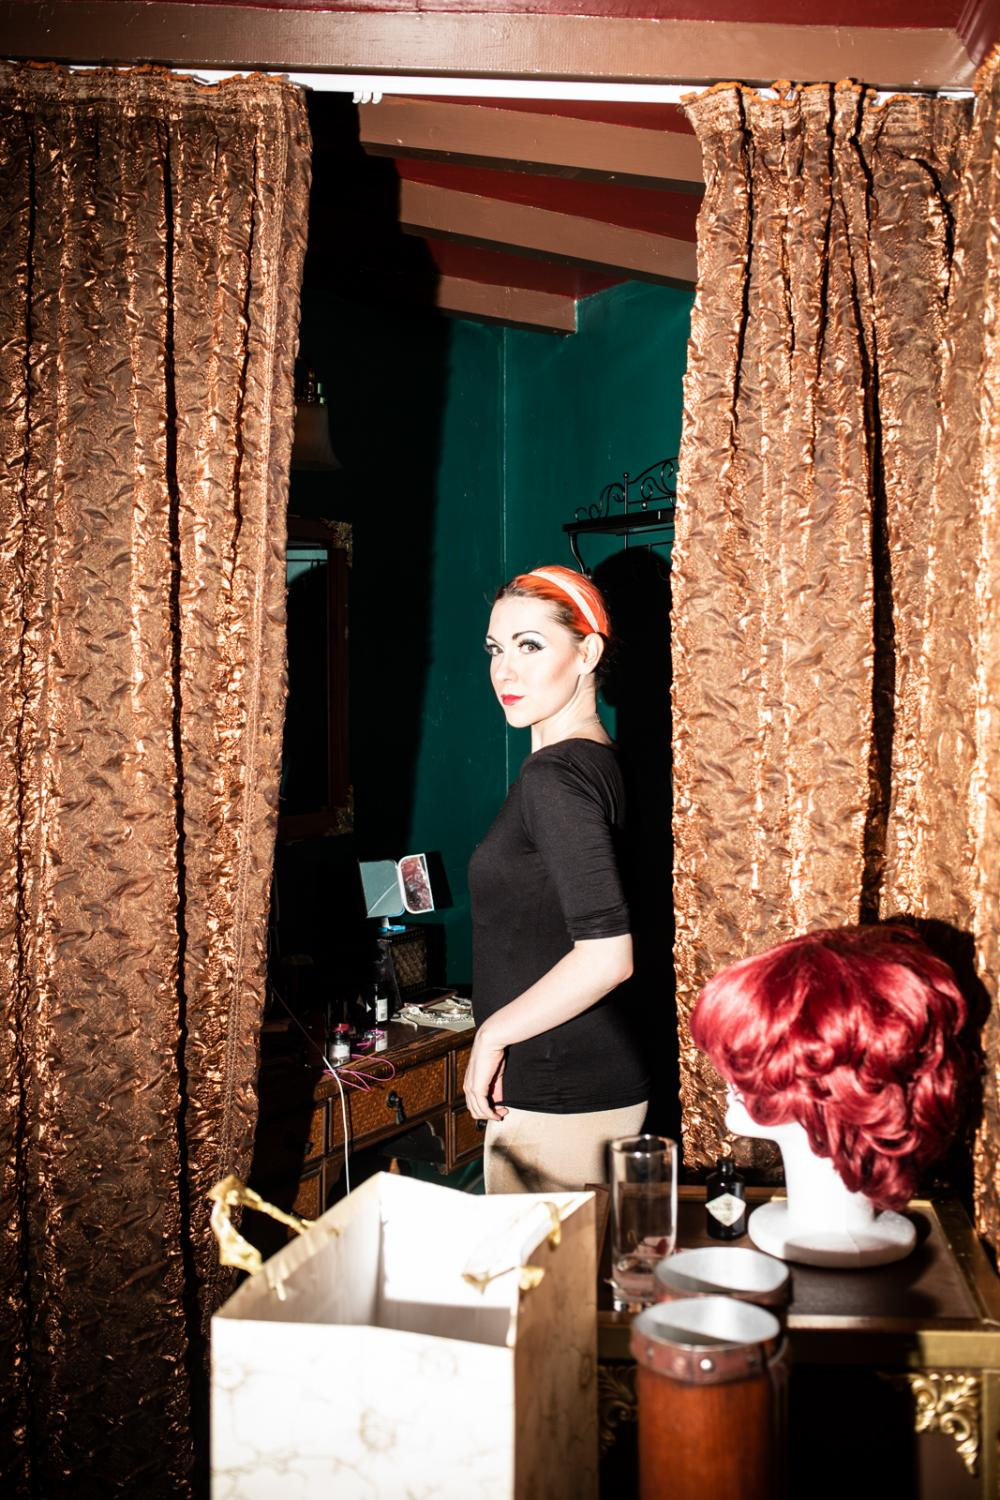 Carisa Hendrix, 32, gets ready to perform at the Magic Castle Cabaret in Santa Barbara. Carisa often performs as her character Lucy Darling.